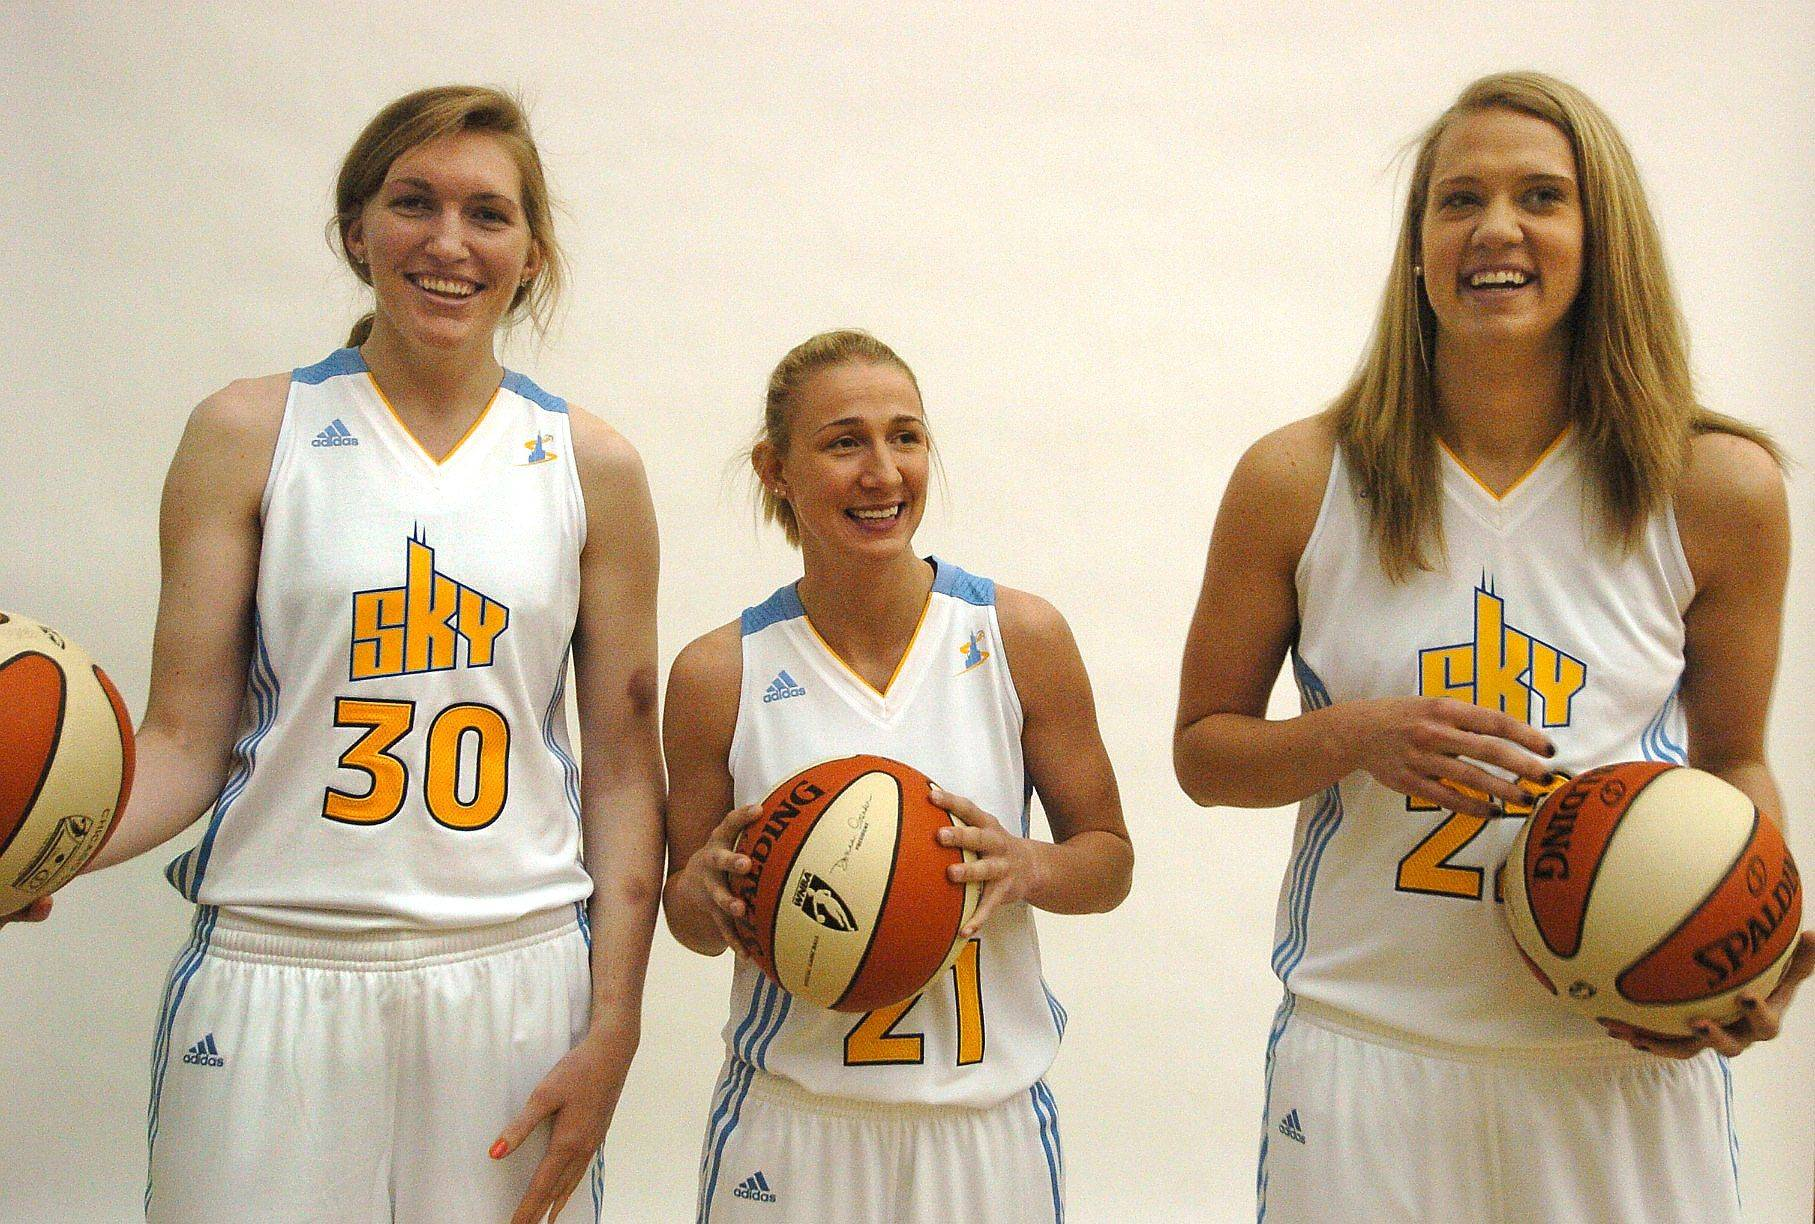 Three rookies from left, Carolyn Swords, Courtney Vandersloot and Amy Jaeschke pose for media day for Chicago Sky.